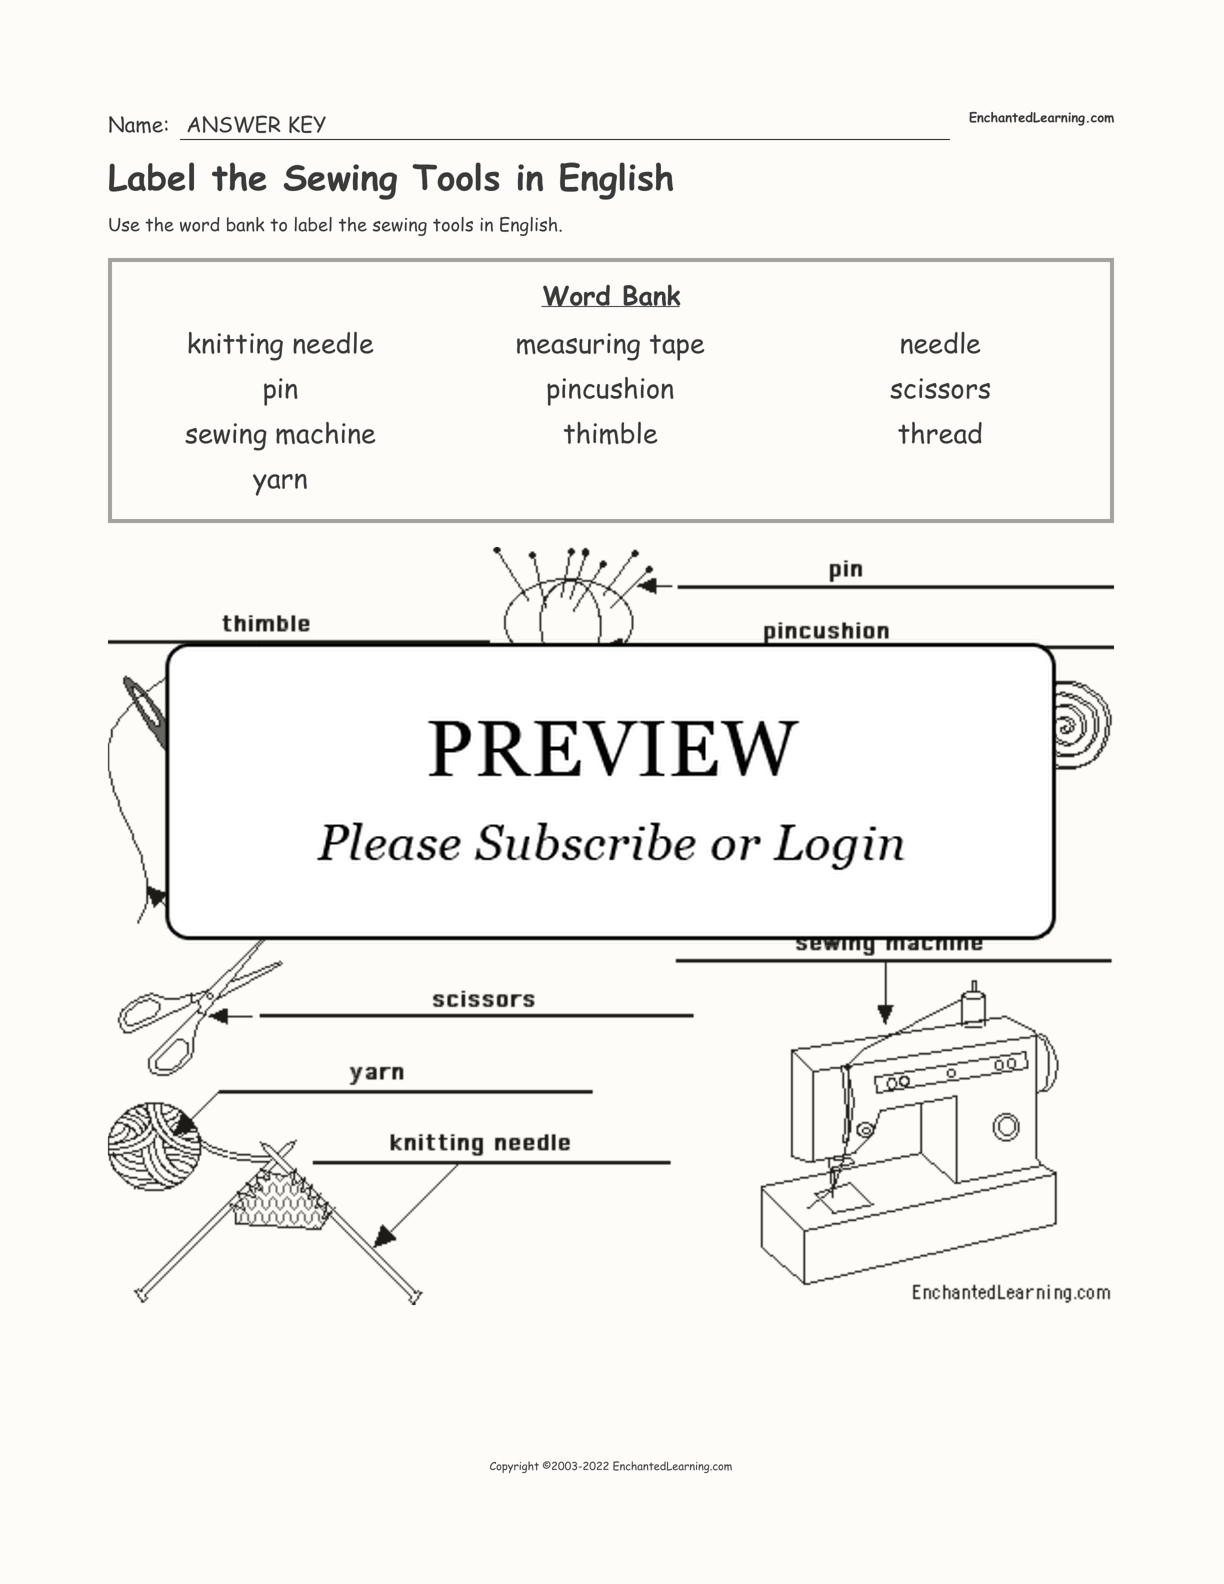 Label The Sewing Tools In English